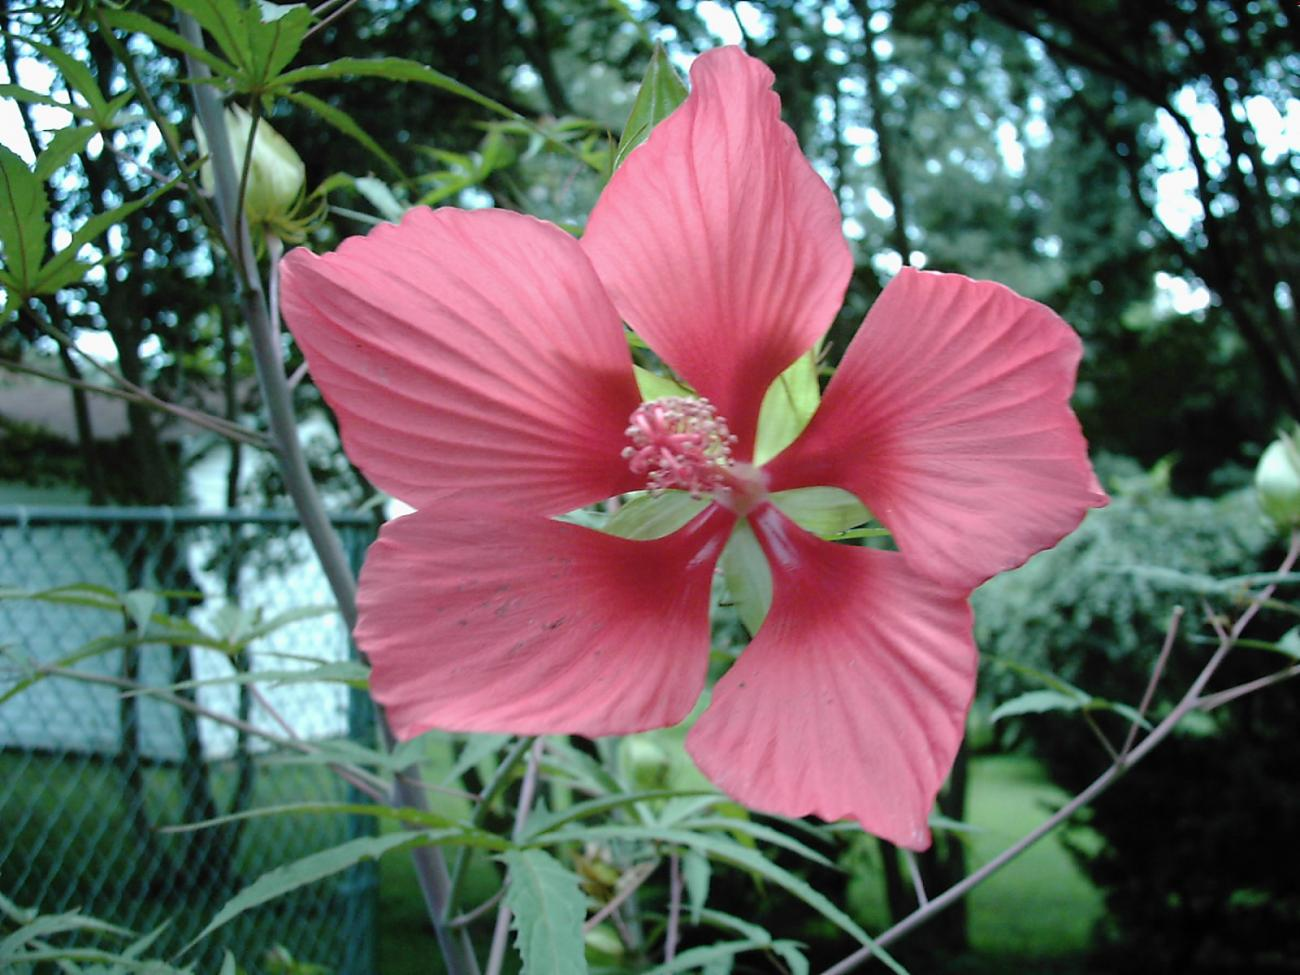 Hibiscus in bloom by calico_jester